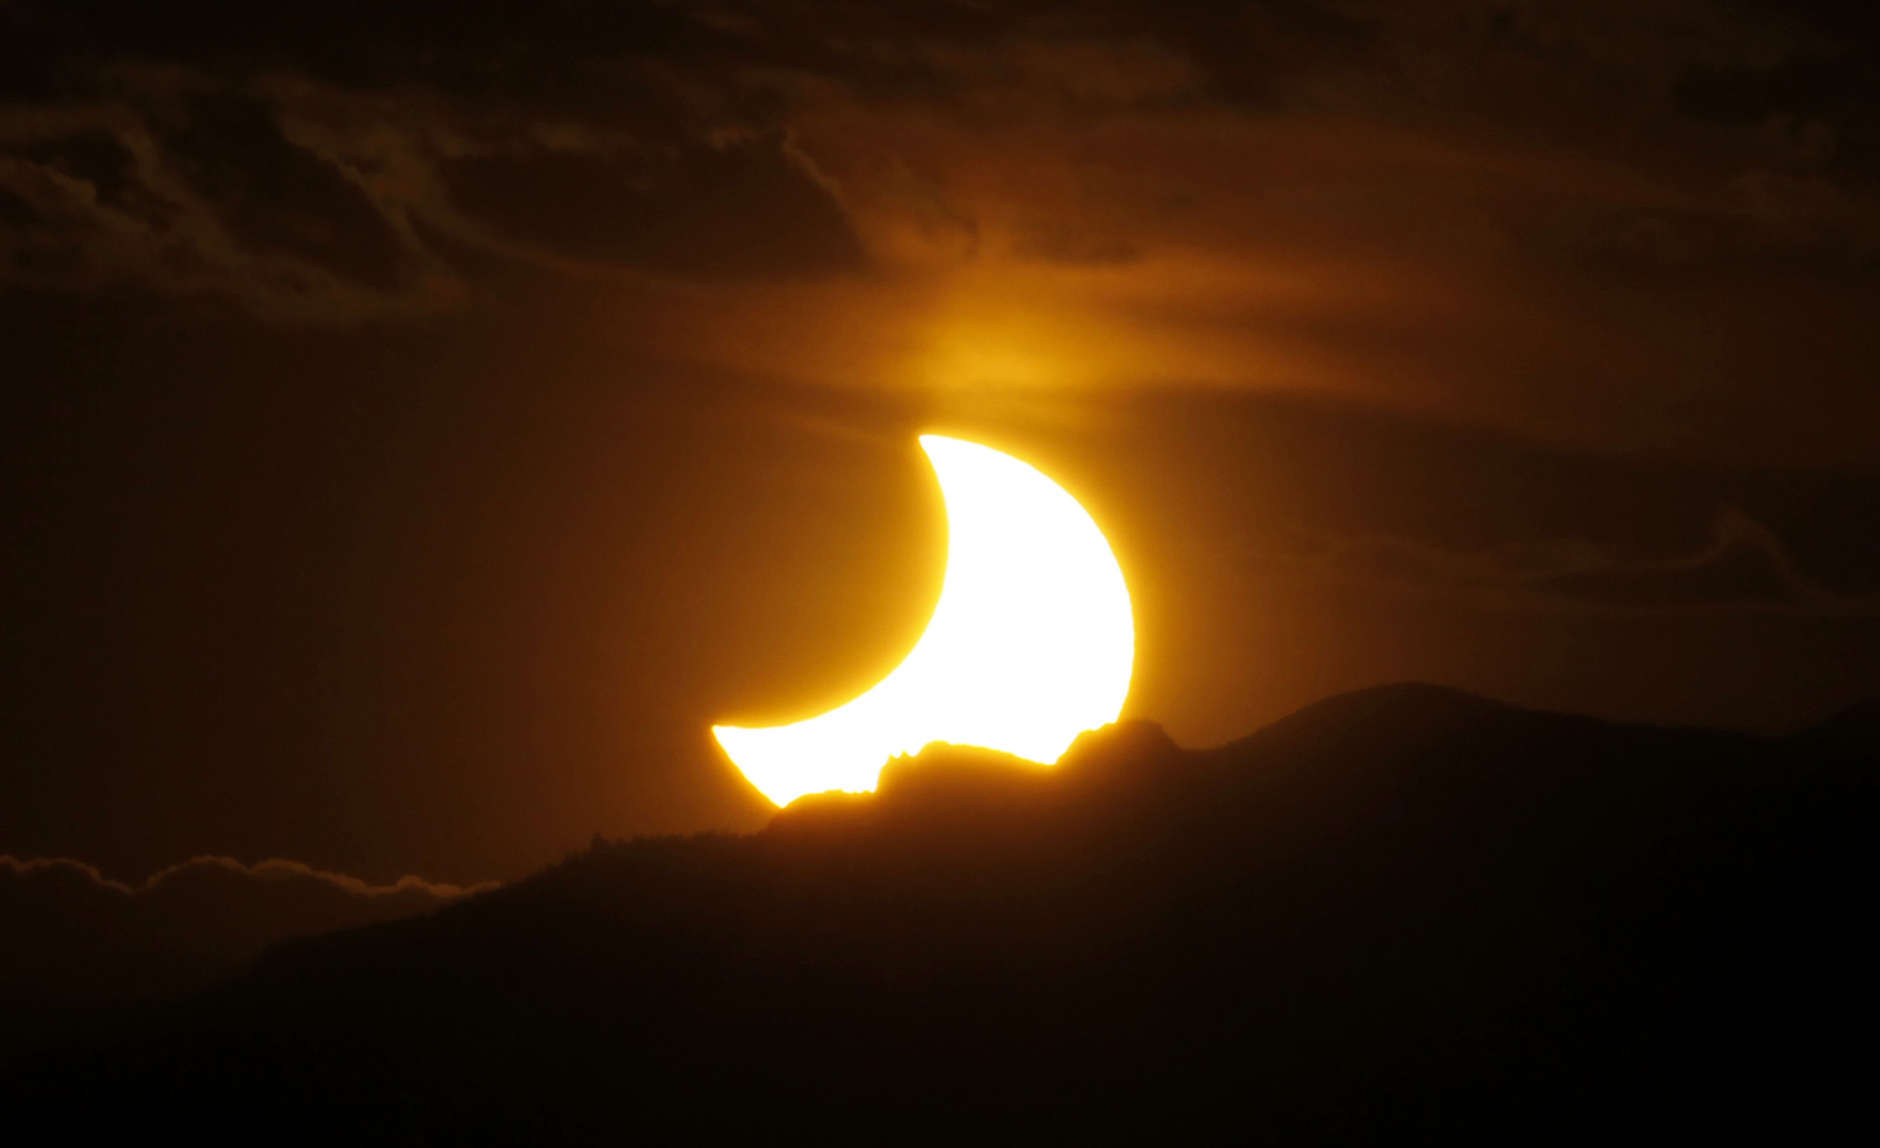 FILE - In this May 20, 2012, file photo, the annular solar eclipse is seen as the sun sets behind the Rocky Mountains from downtown Denver. Destinations are hosting festivals, hotels are selling out and travelers are planning trips for the total solar eclipse that will be visible coast to coast on Aug. 21, 2017. A narrow path of the United States 60 to 70 miles wide from Oregon to South Carolina will experience total darkness, also known as totality. (AP Photo/David Zalubowski, File)